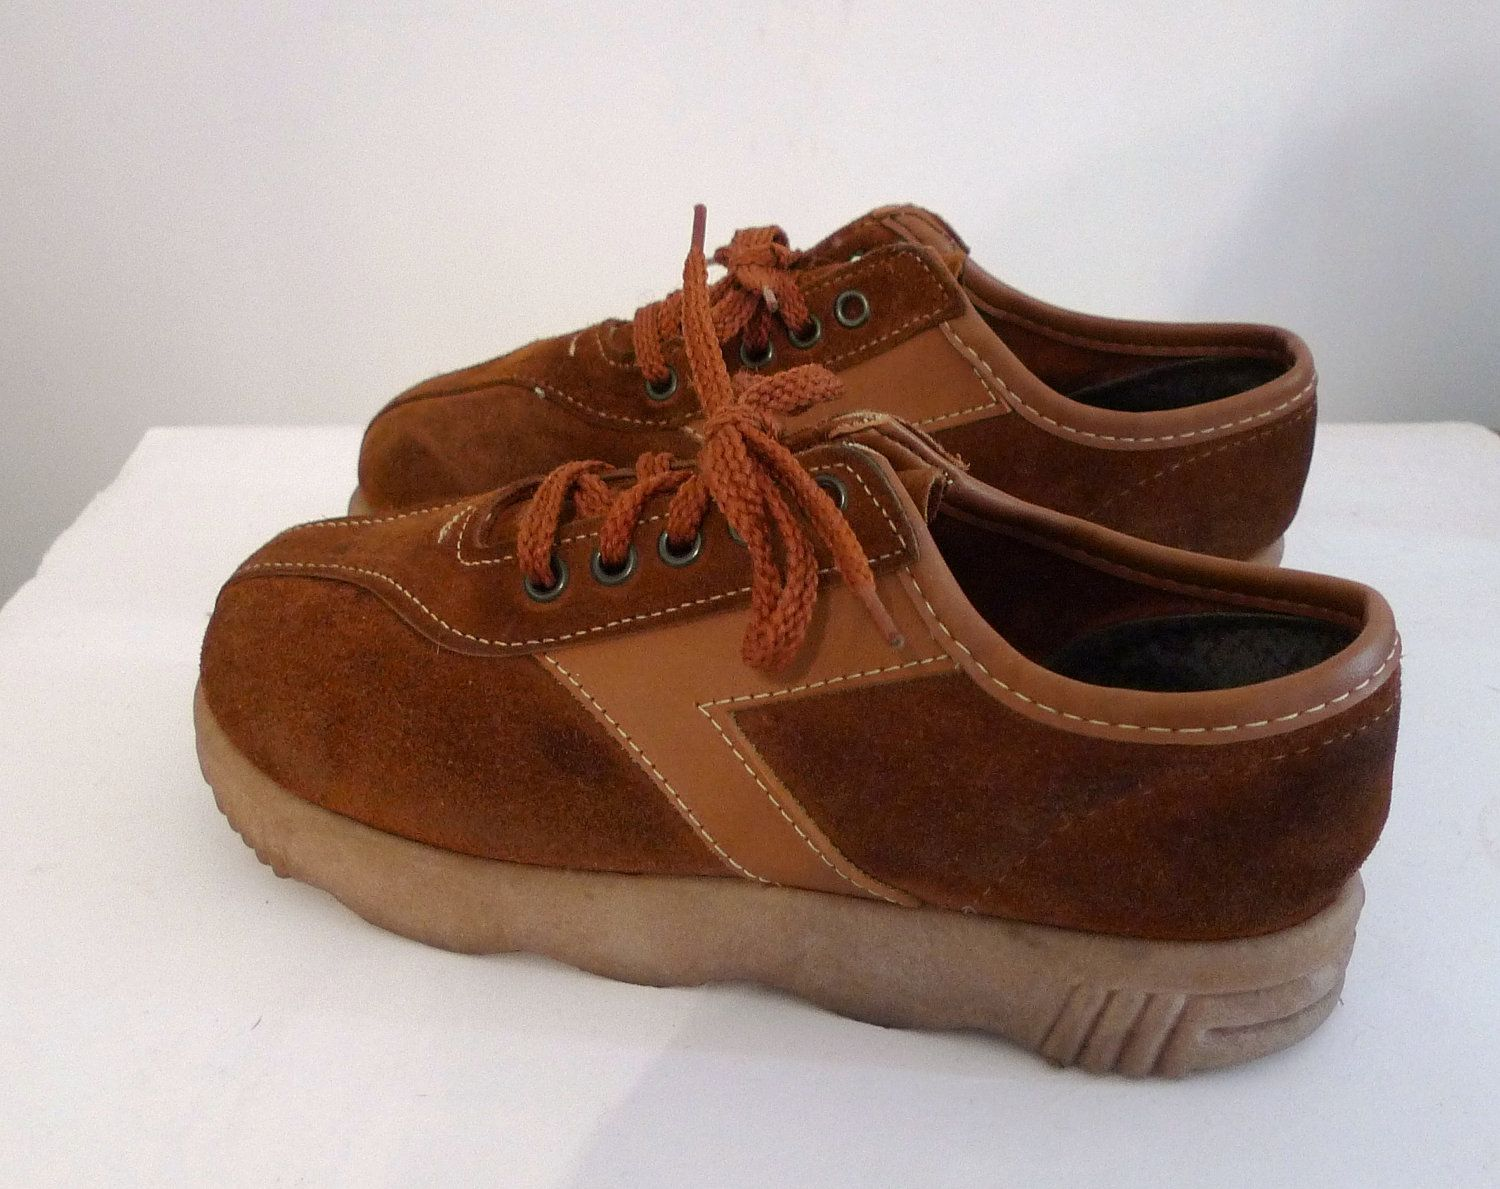 Items similar to SALE Vintage 70s Whiskey Platform Sneakers Oxford Shoes/  Wavy Famolare-like Crepe Sole on Etsy